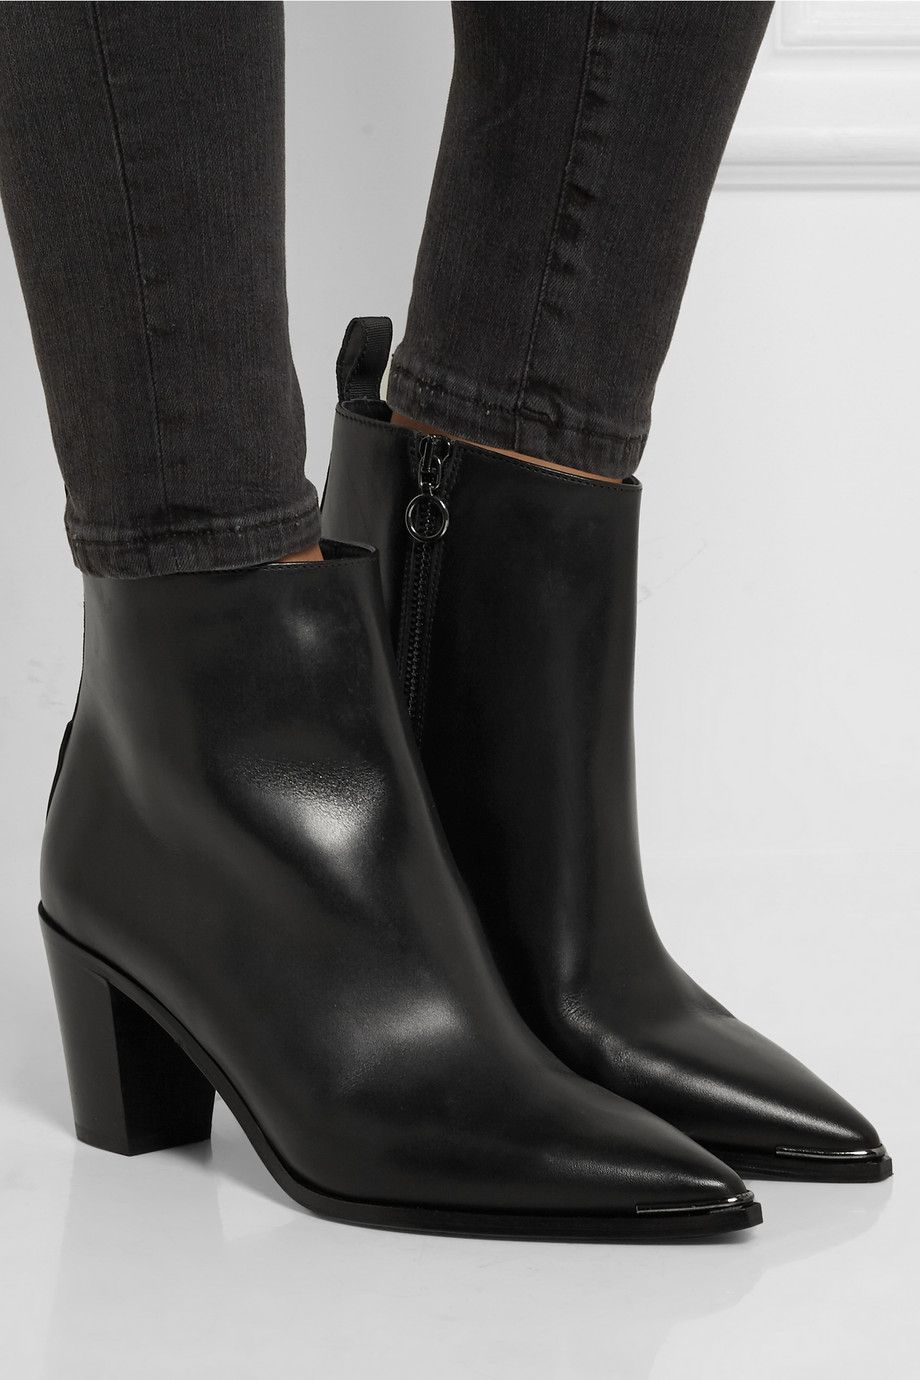 ACNE STUDIOS Loma leather ankle boots   SHOES   Boots, Shoes ... 32f74827ab5